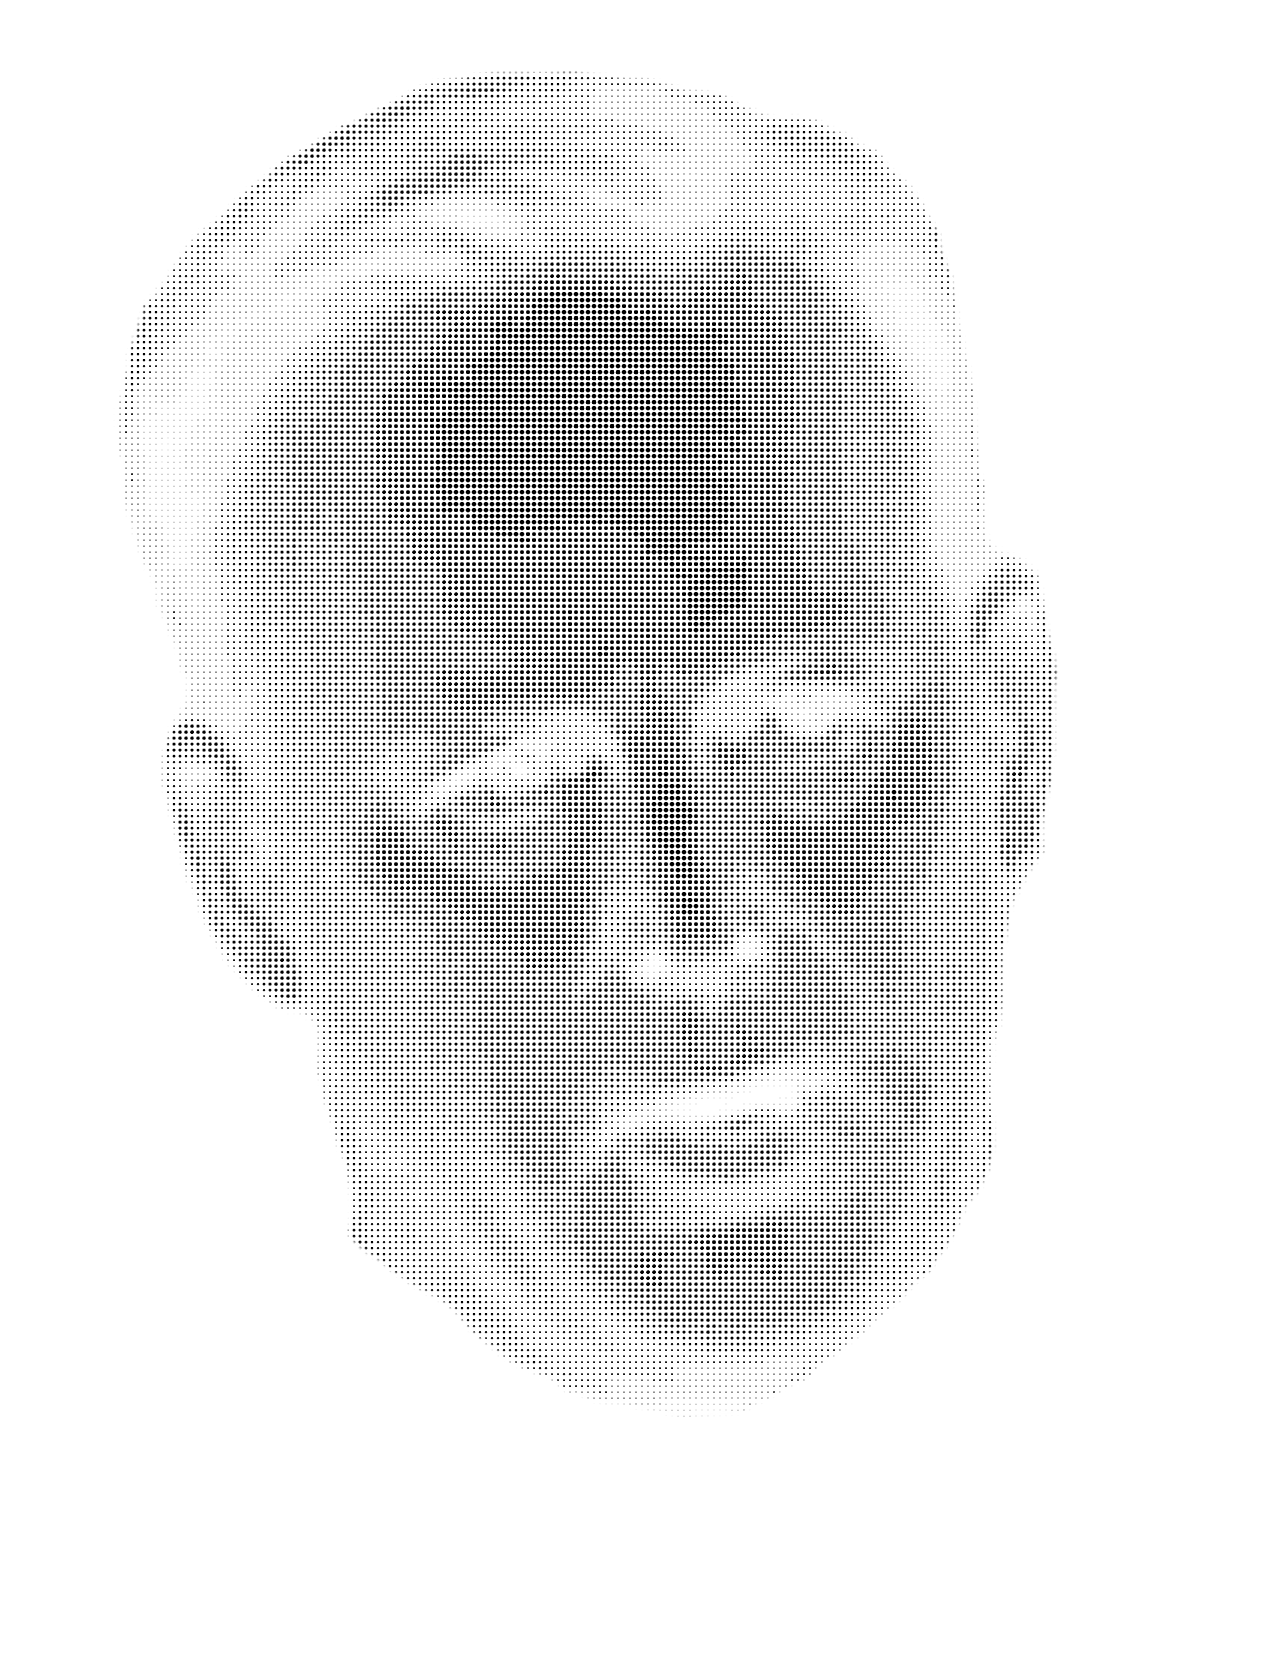 Picture of Spicer Face Halftone and Good Engraving